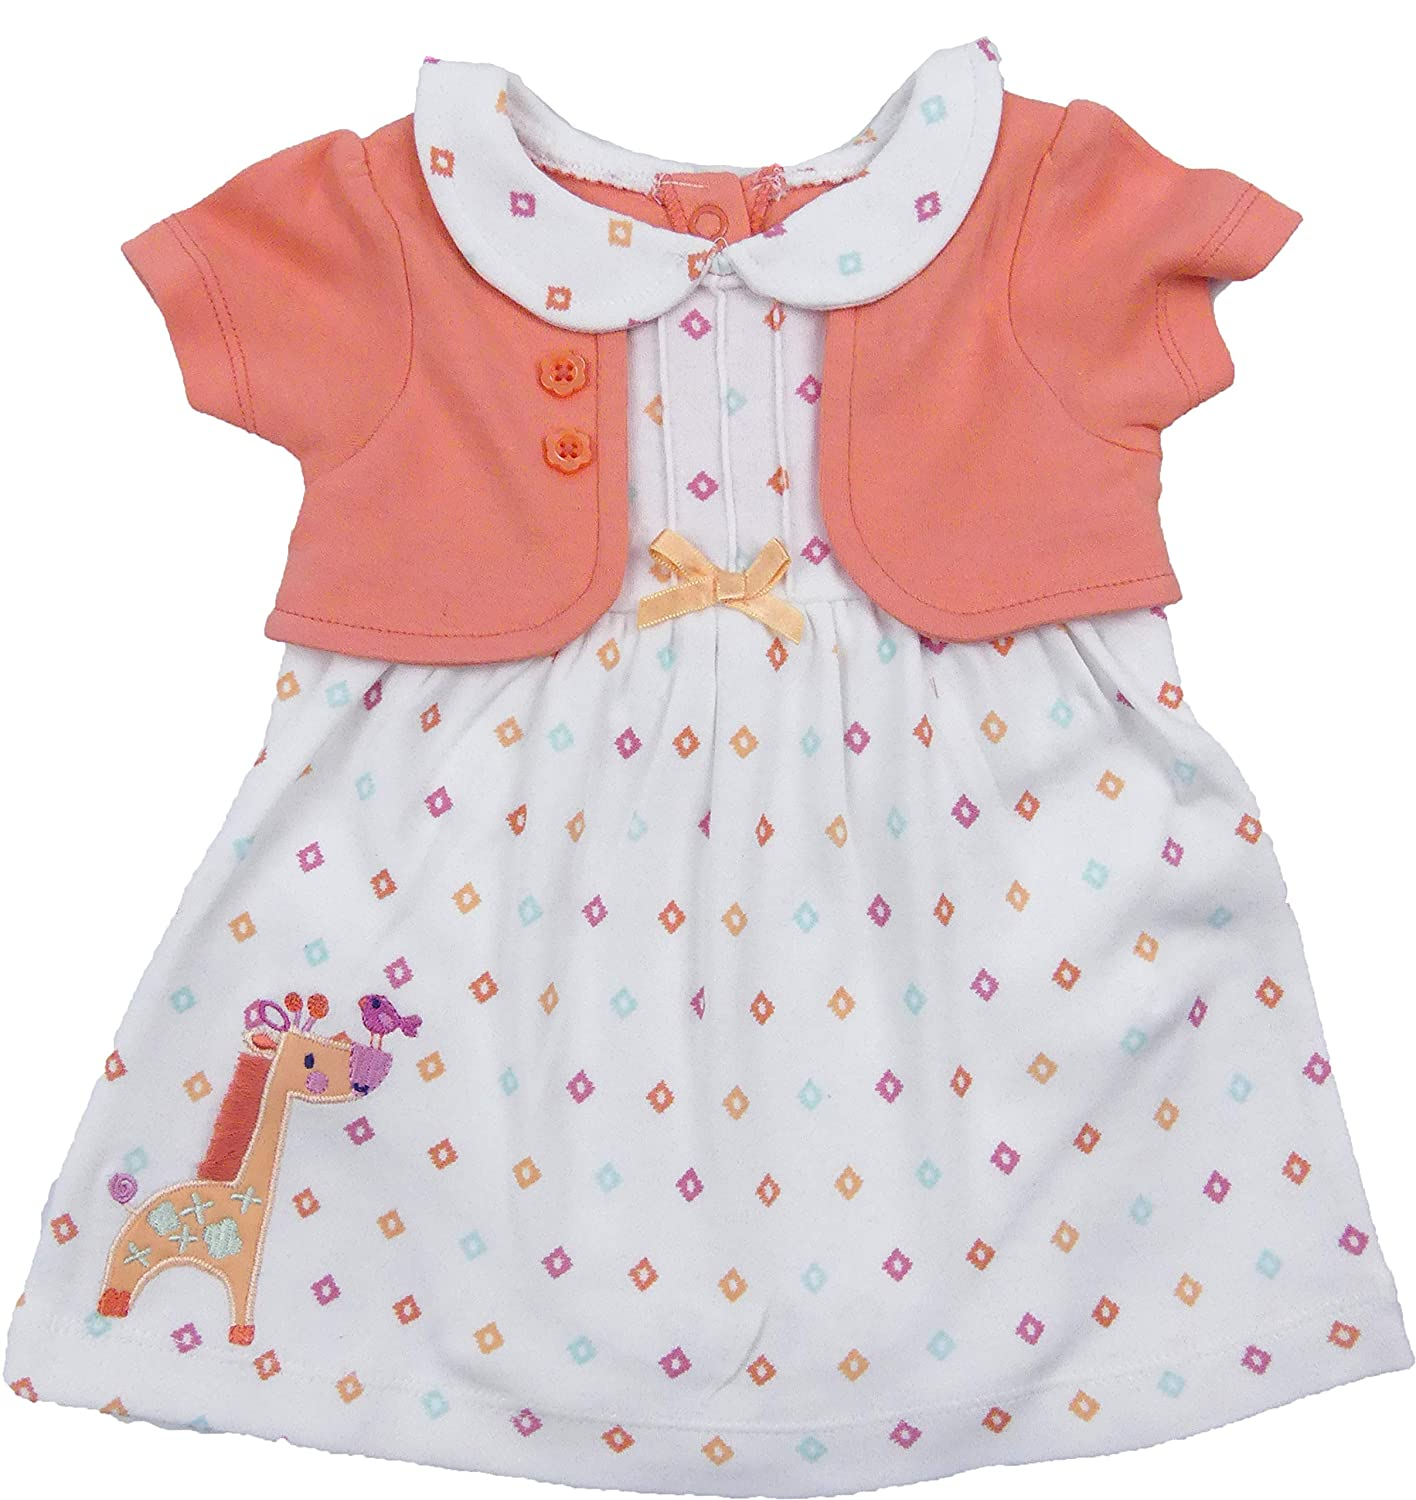 77eb6a1dcef8 Amazon.com  The Pyjama Party Baby Girl Dress Outfit Summer Wear Mock Bolero  Jacket Integral Body Suit RRP £11  Clothing